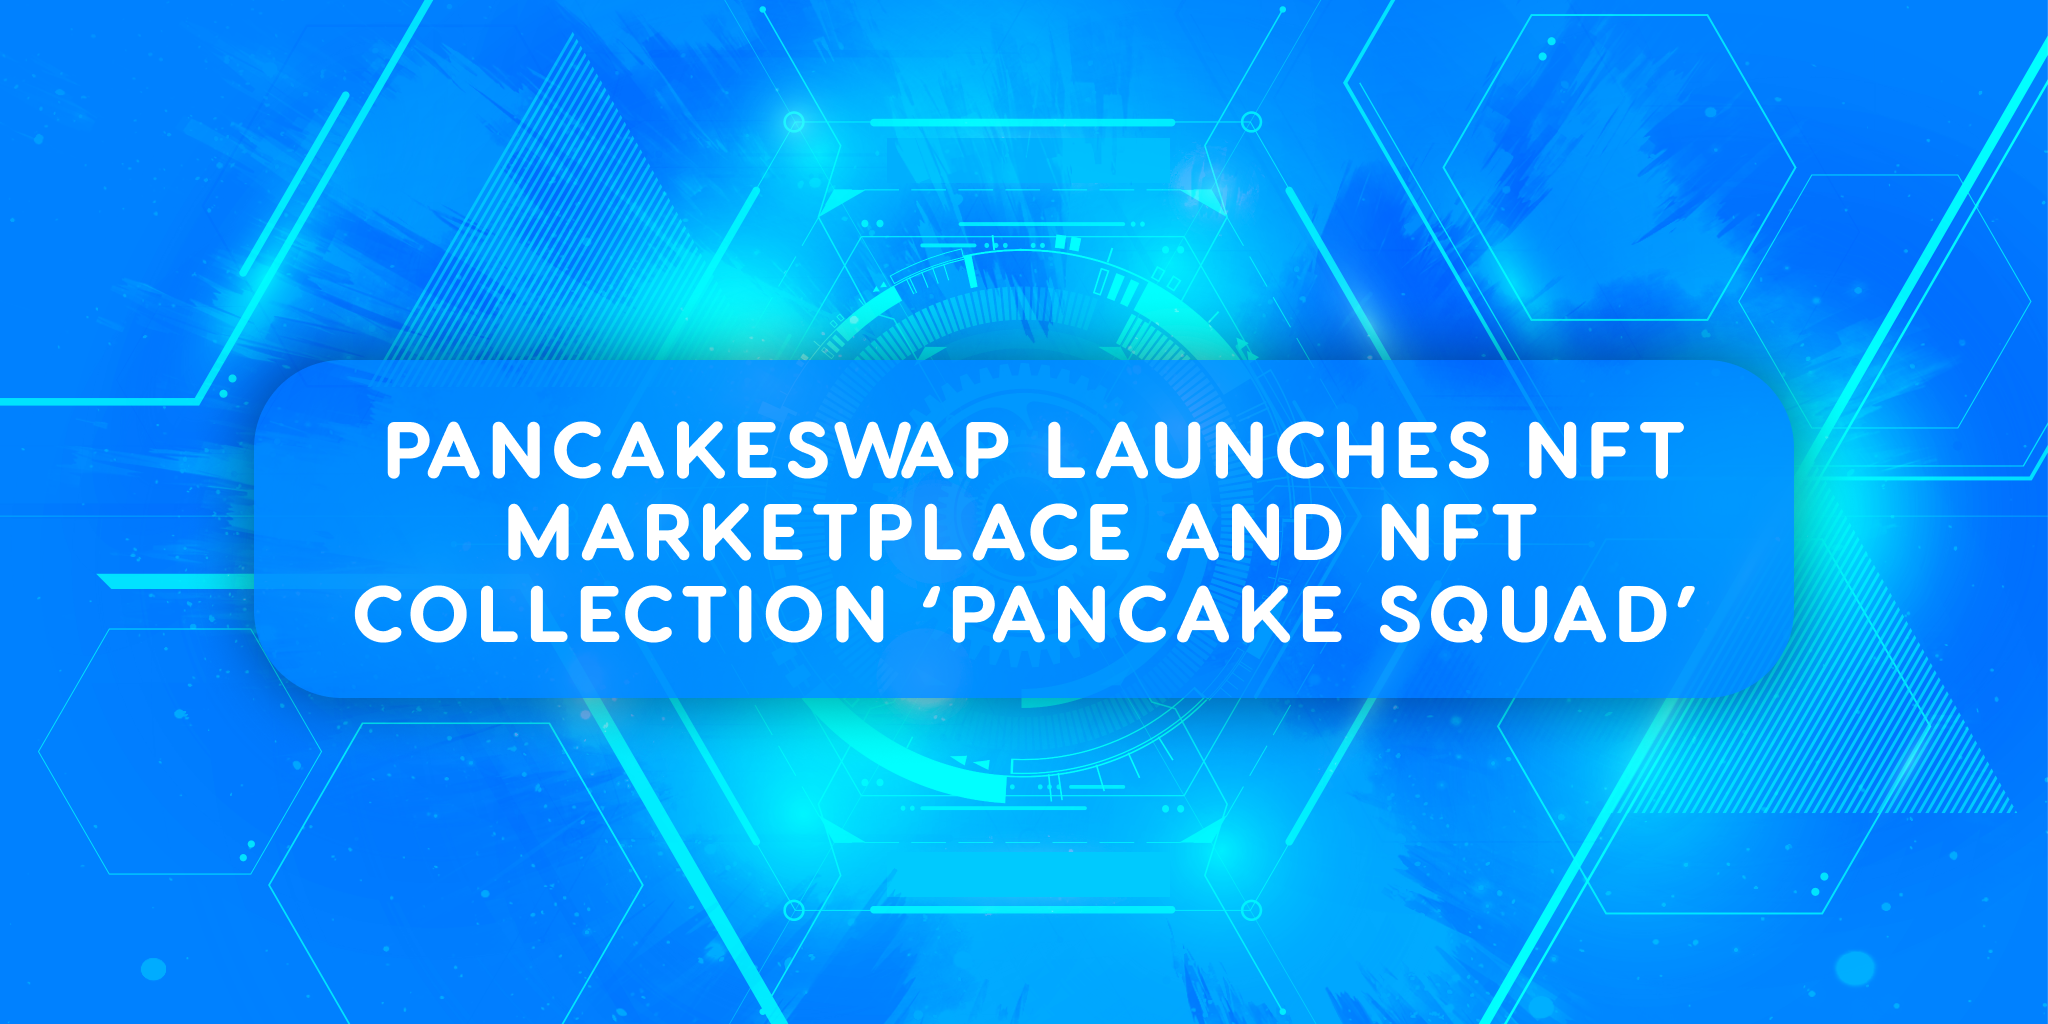 PancakeSwap launches NFT marketplace and NFT collection 'Pancake Squad'